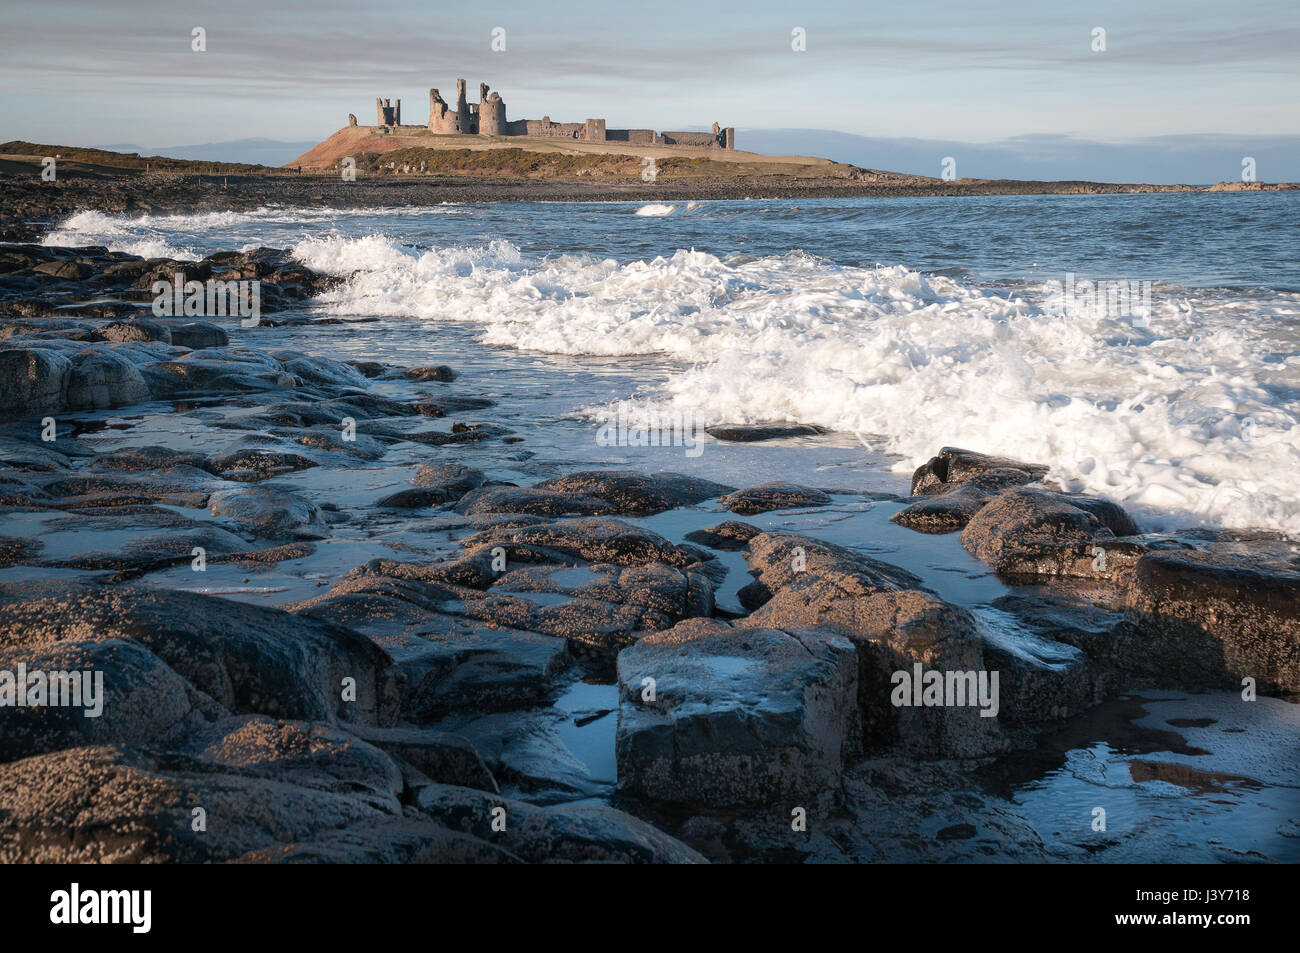 Dunstanburgh Castle on its Whin Sill outcrop, seen from the south. The castle, built in the 14th century, fell into - Stock Image